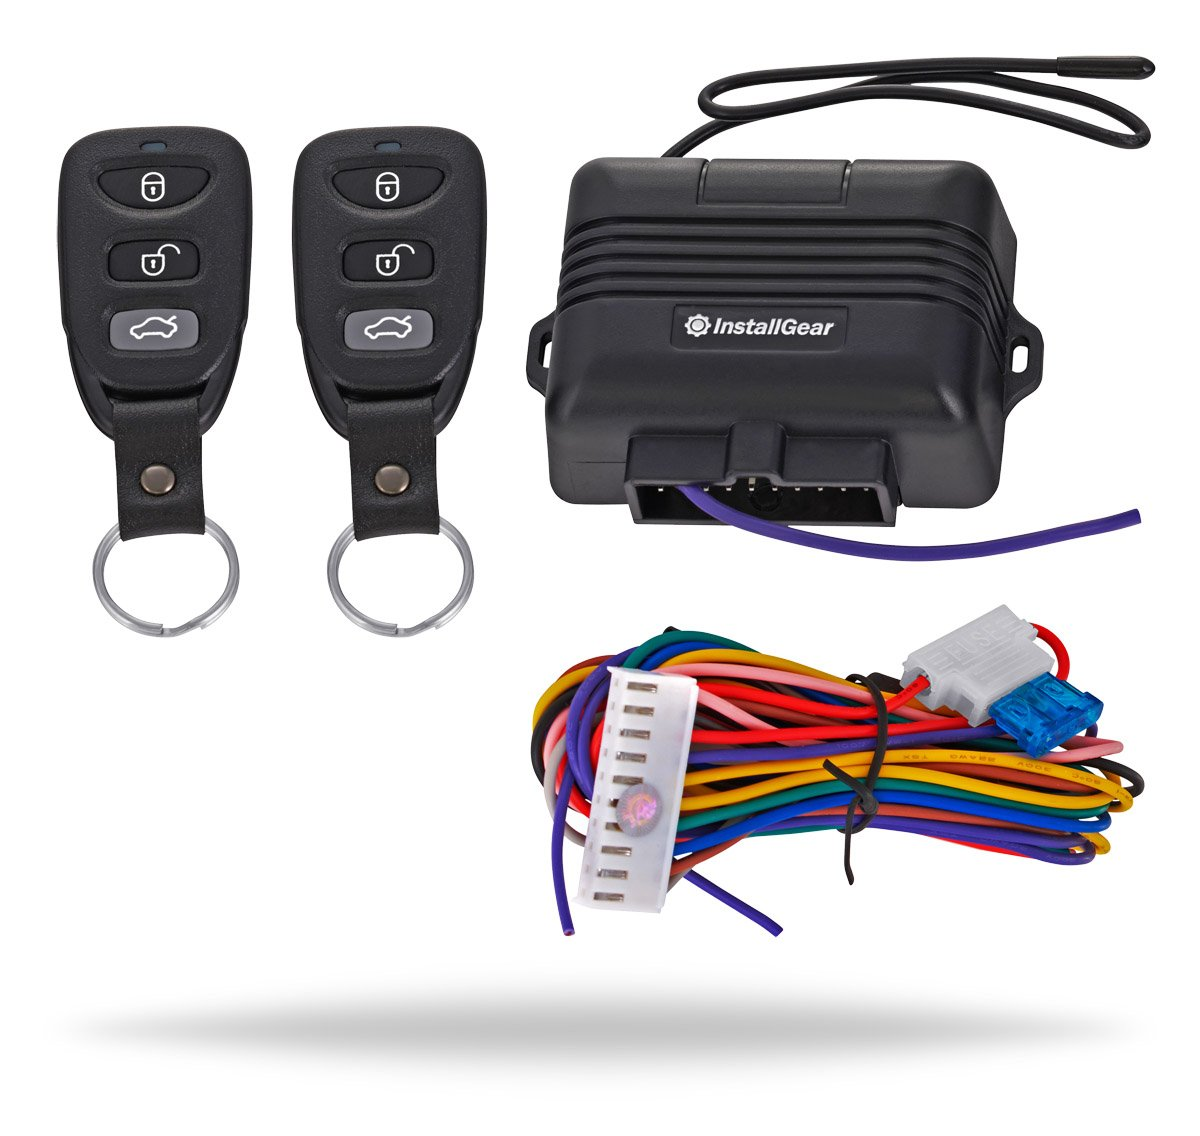 Installgear Keyless Entry System Trunk Pop Release Central Locking Relay Wiring Diagram With Two 3 Button Remotes Car Electronics